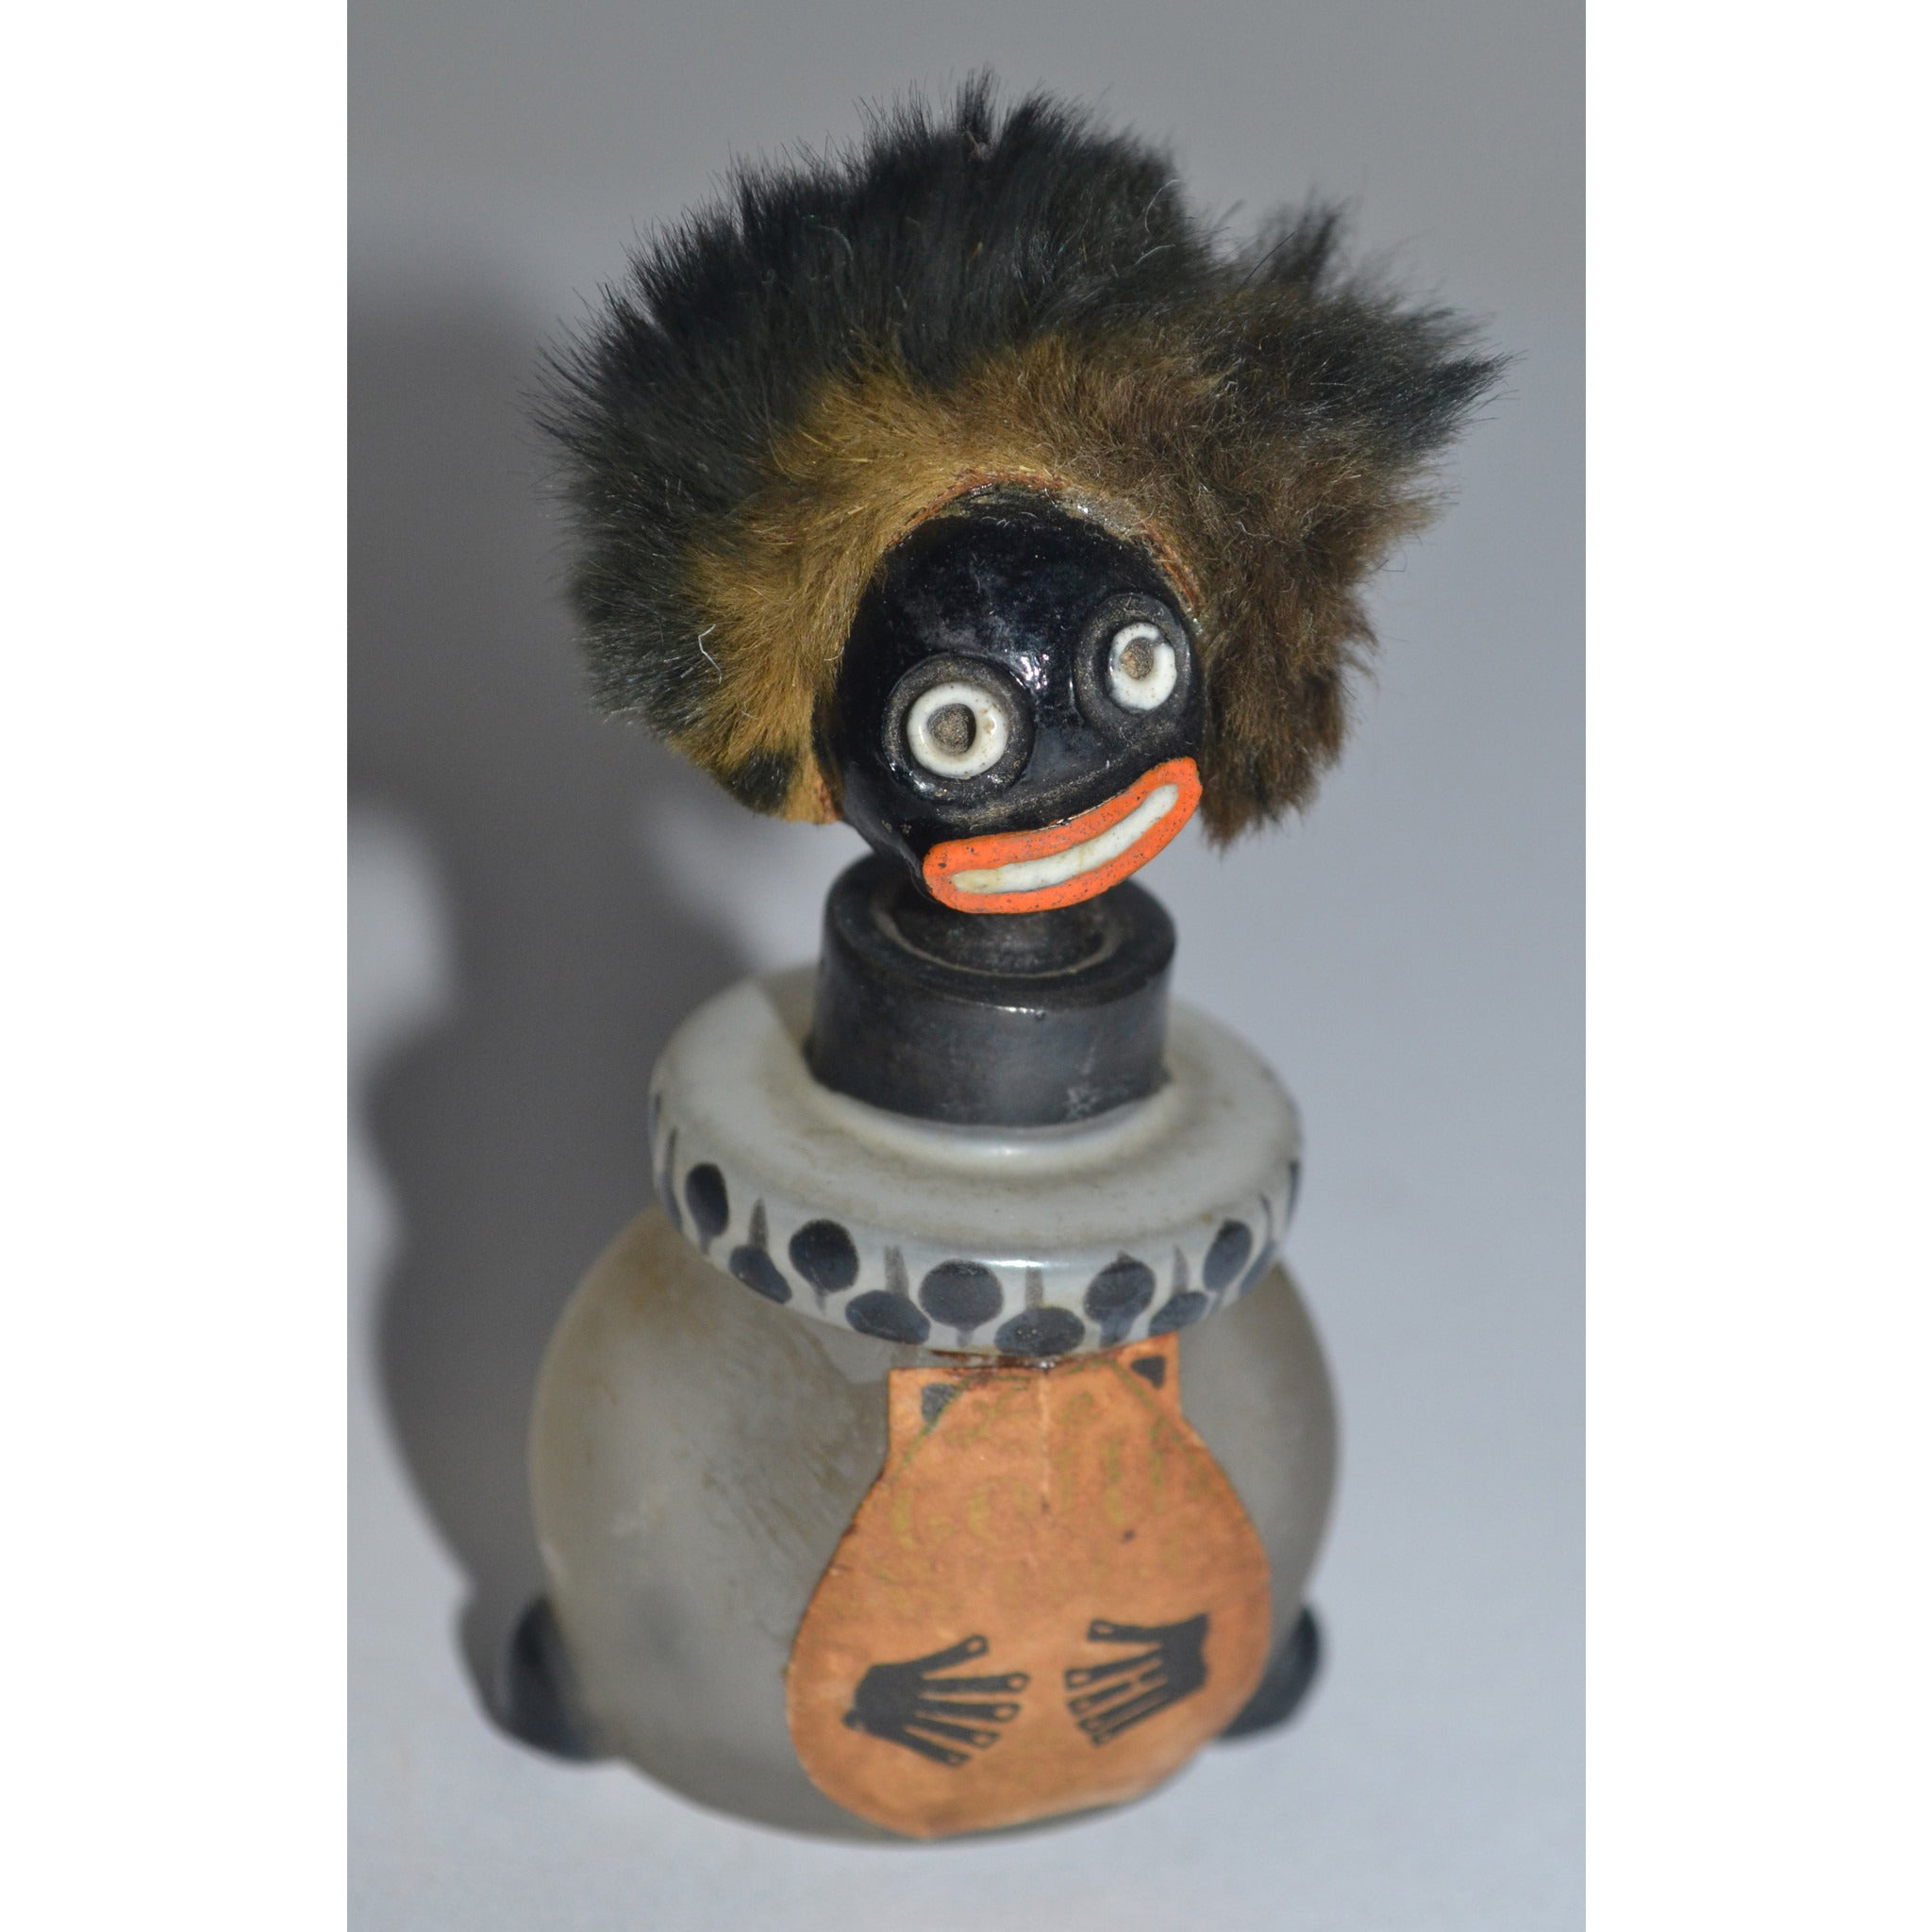 Vintage Golliwogg Perfume Bottle By Vigny